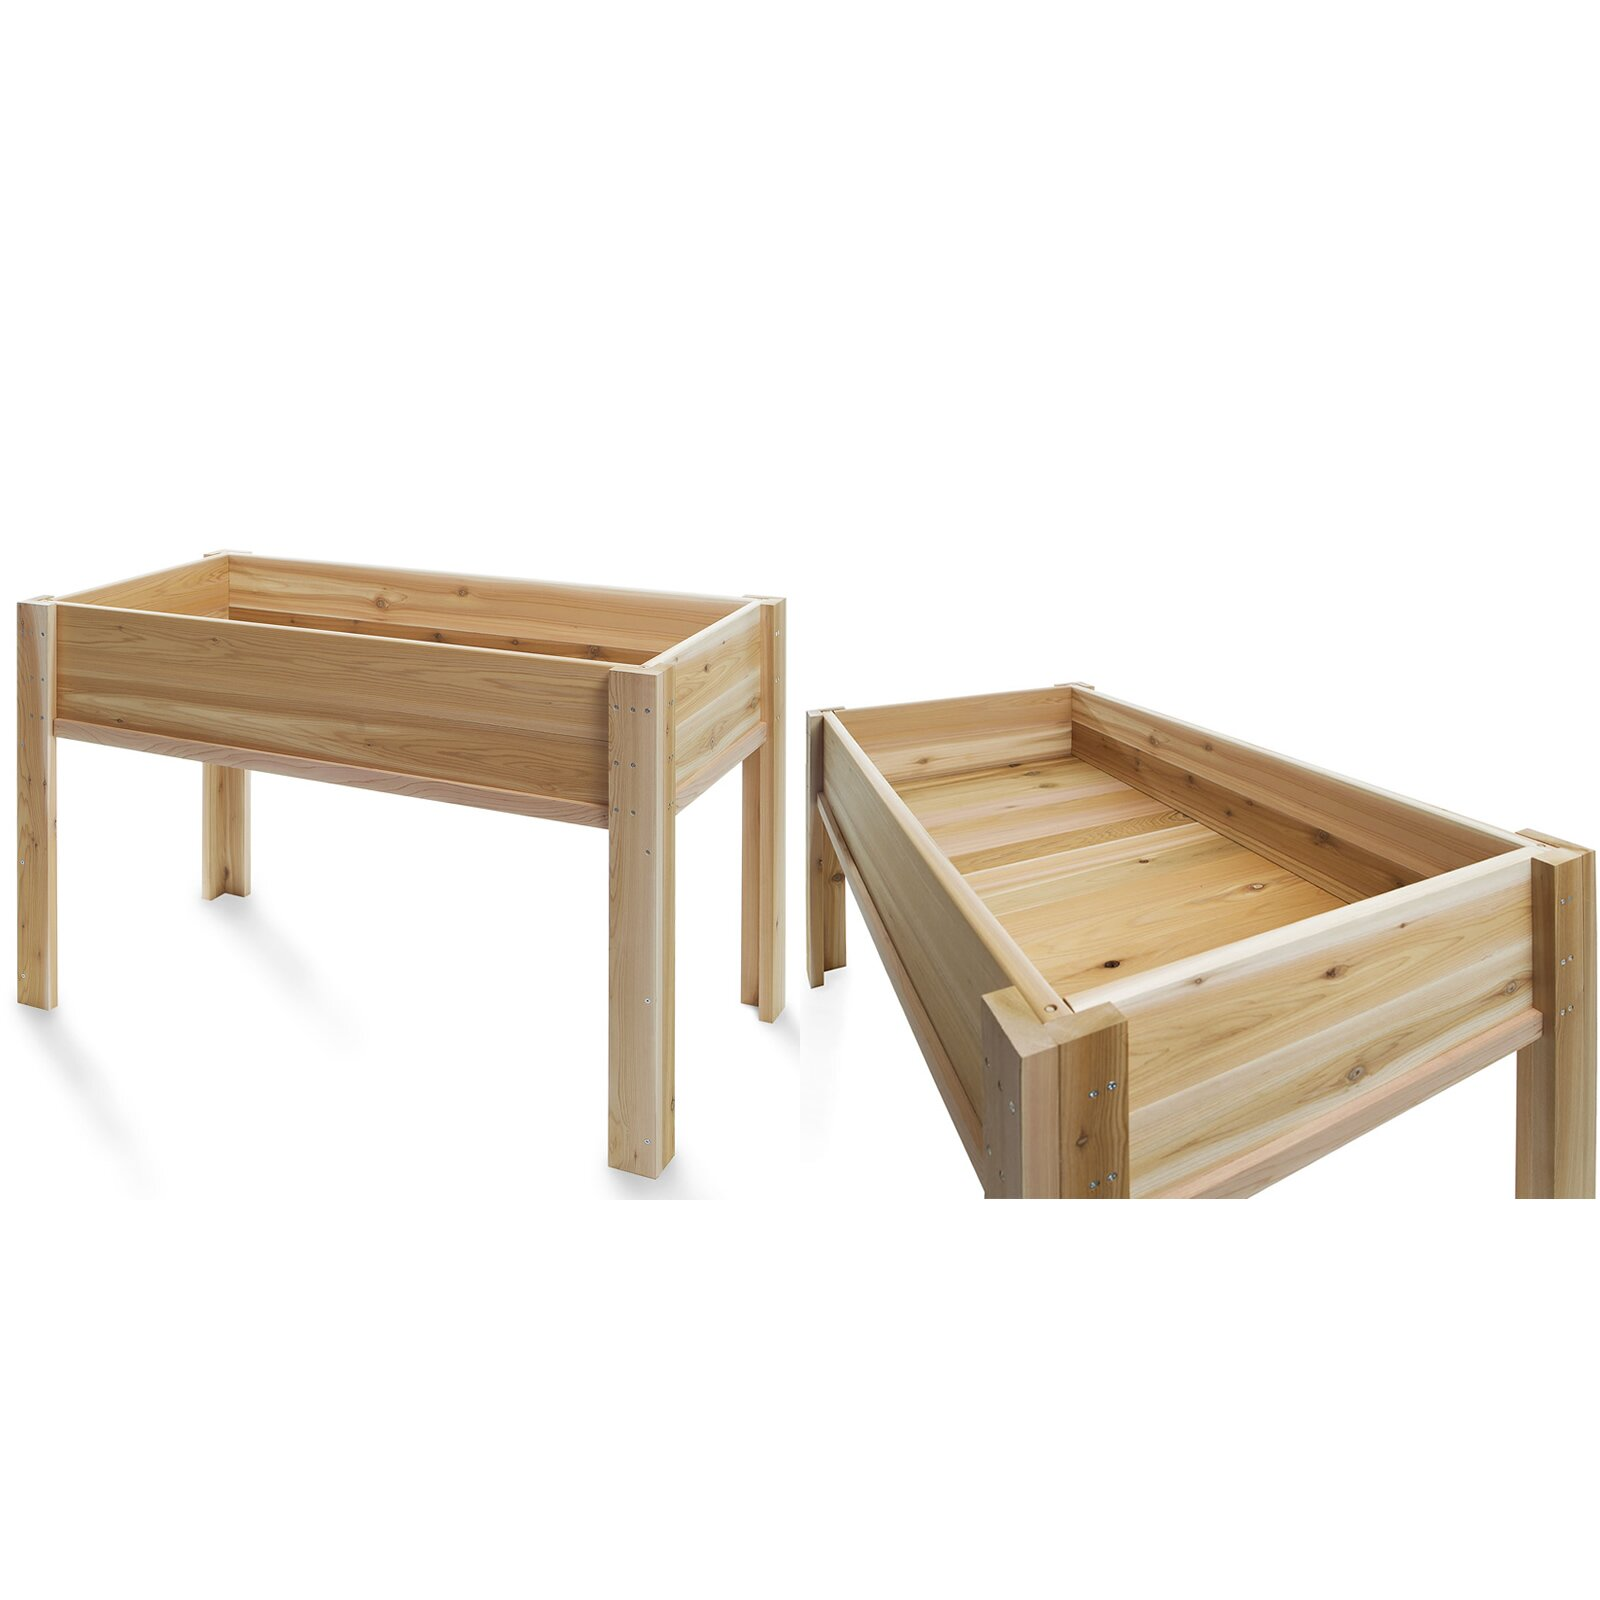 how to build a raised garden box with legs